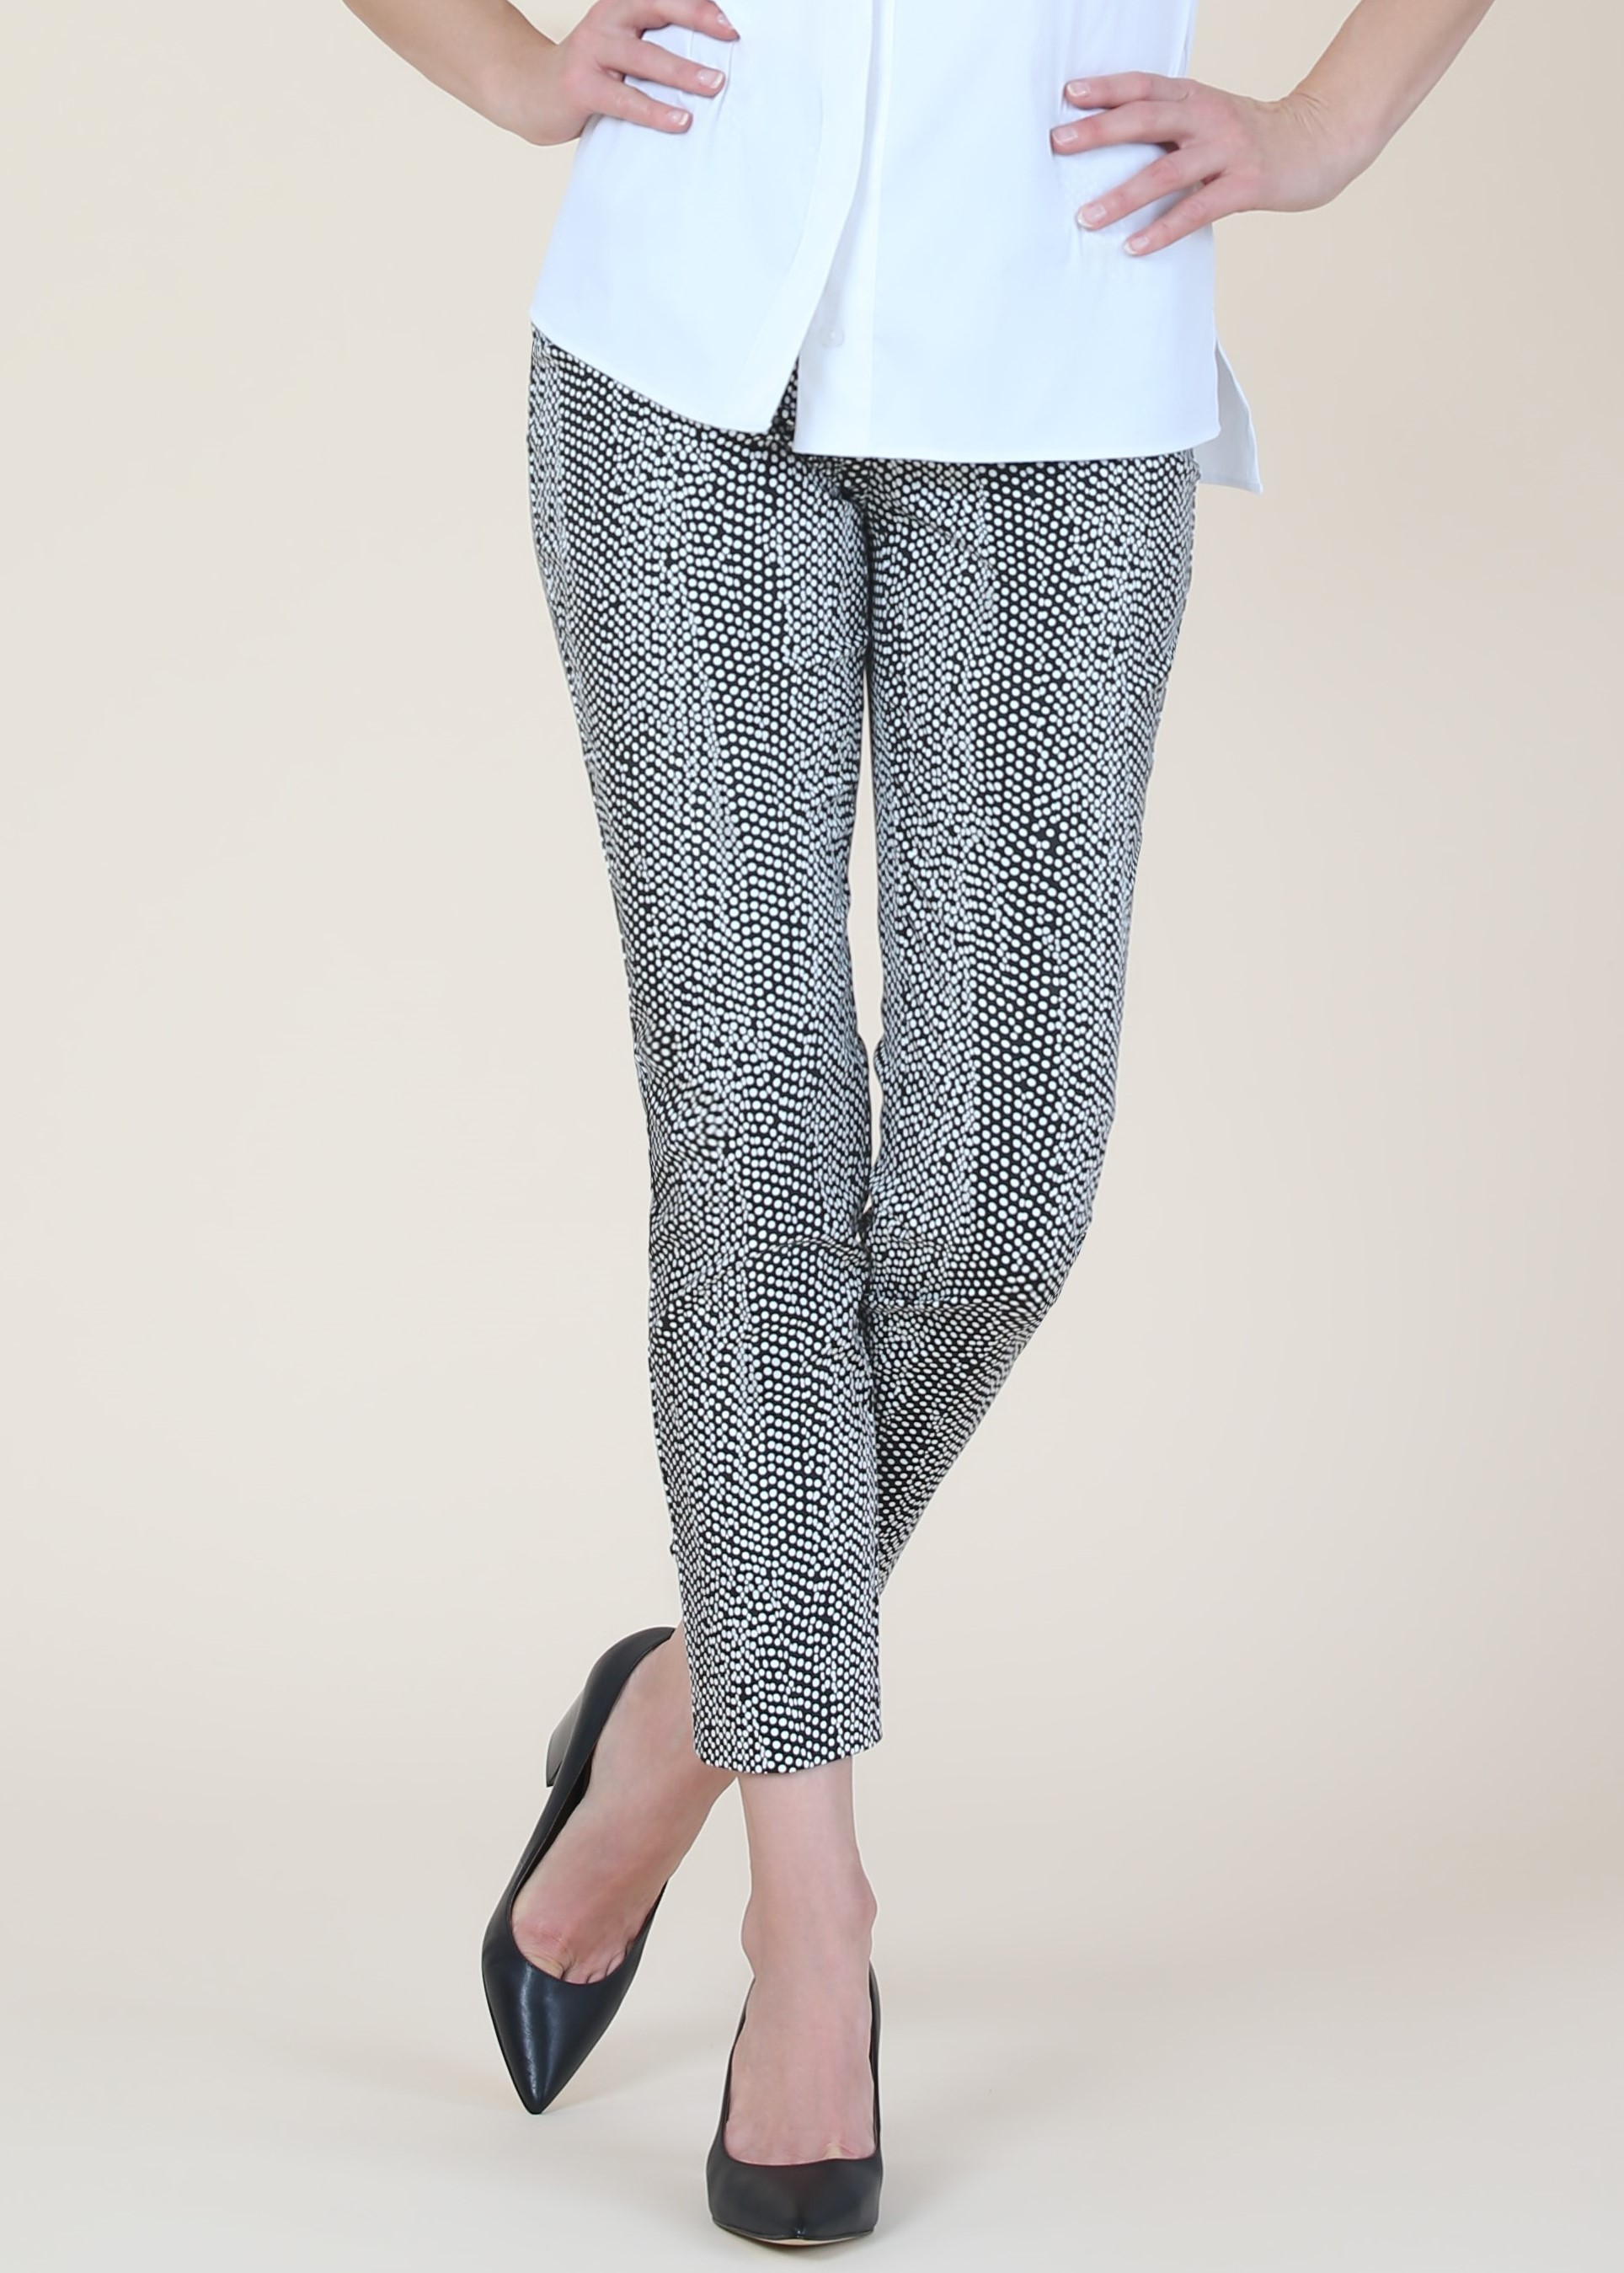 Lisette L. Slim Ankle Pant Style 74601 Cyber Dot Color Black/White